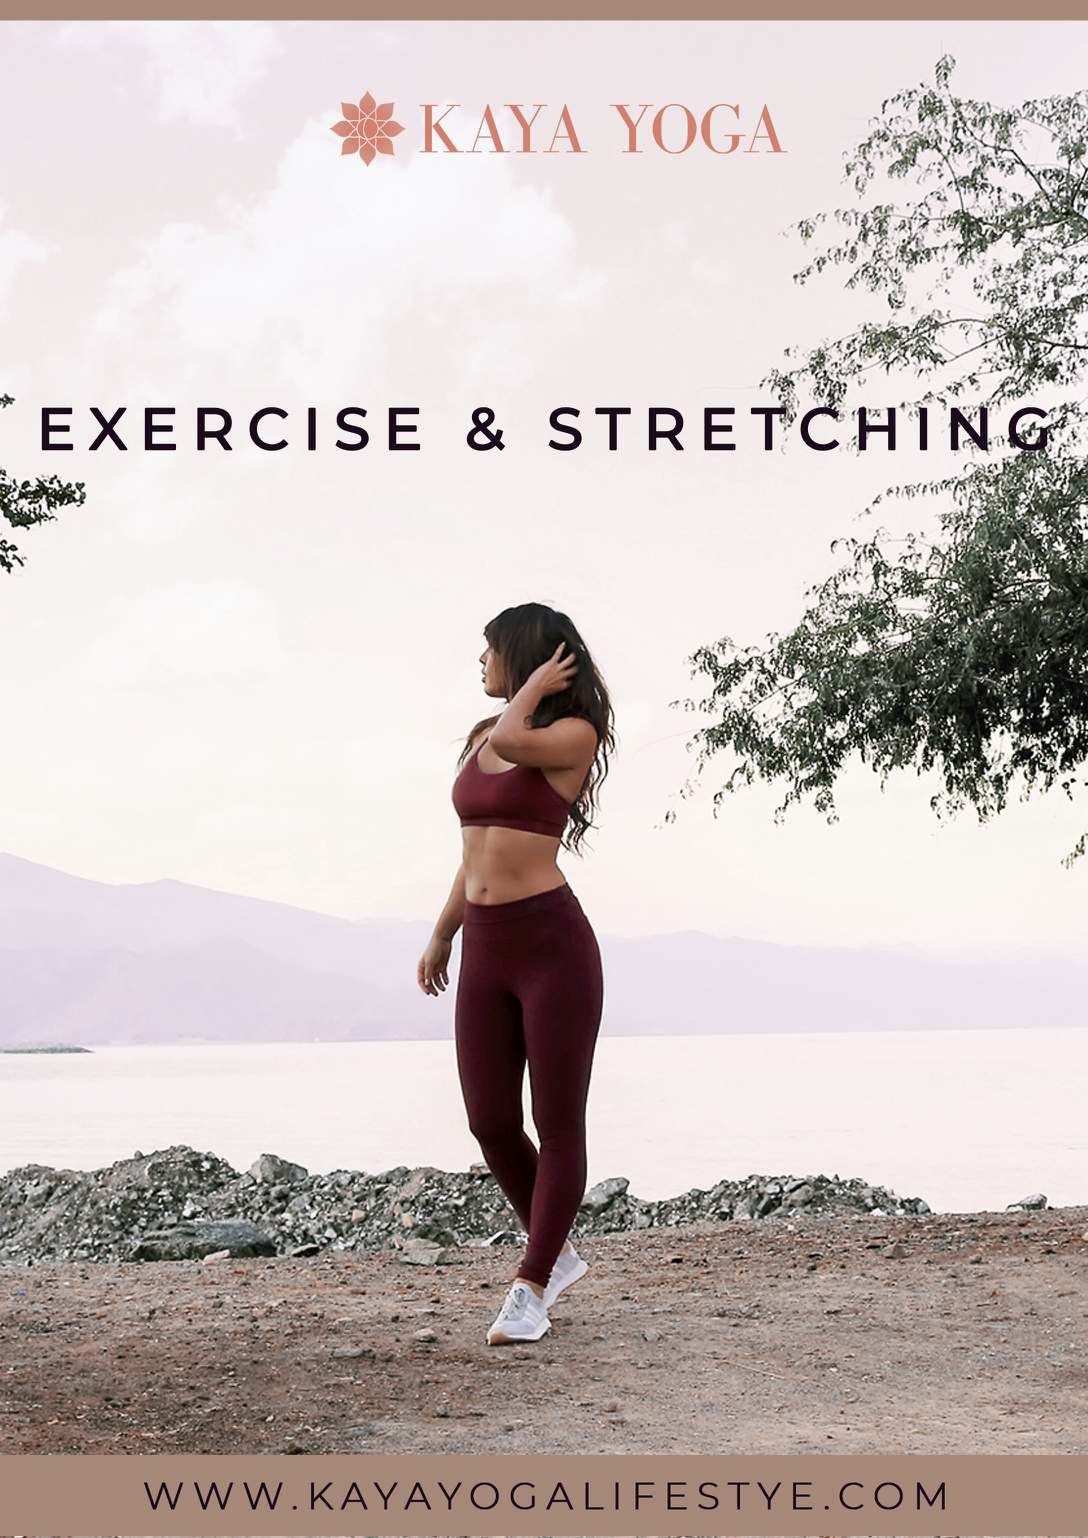 Exercise & Stretching (dragged) copy